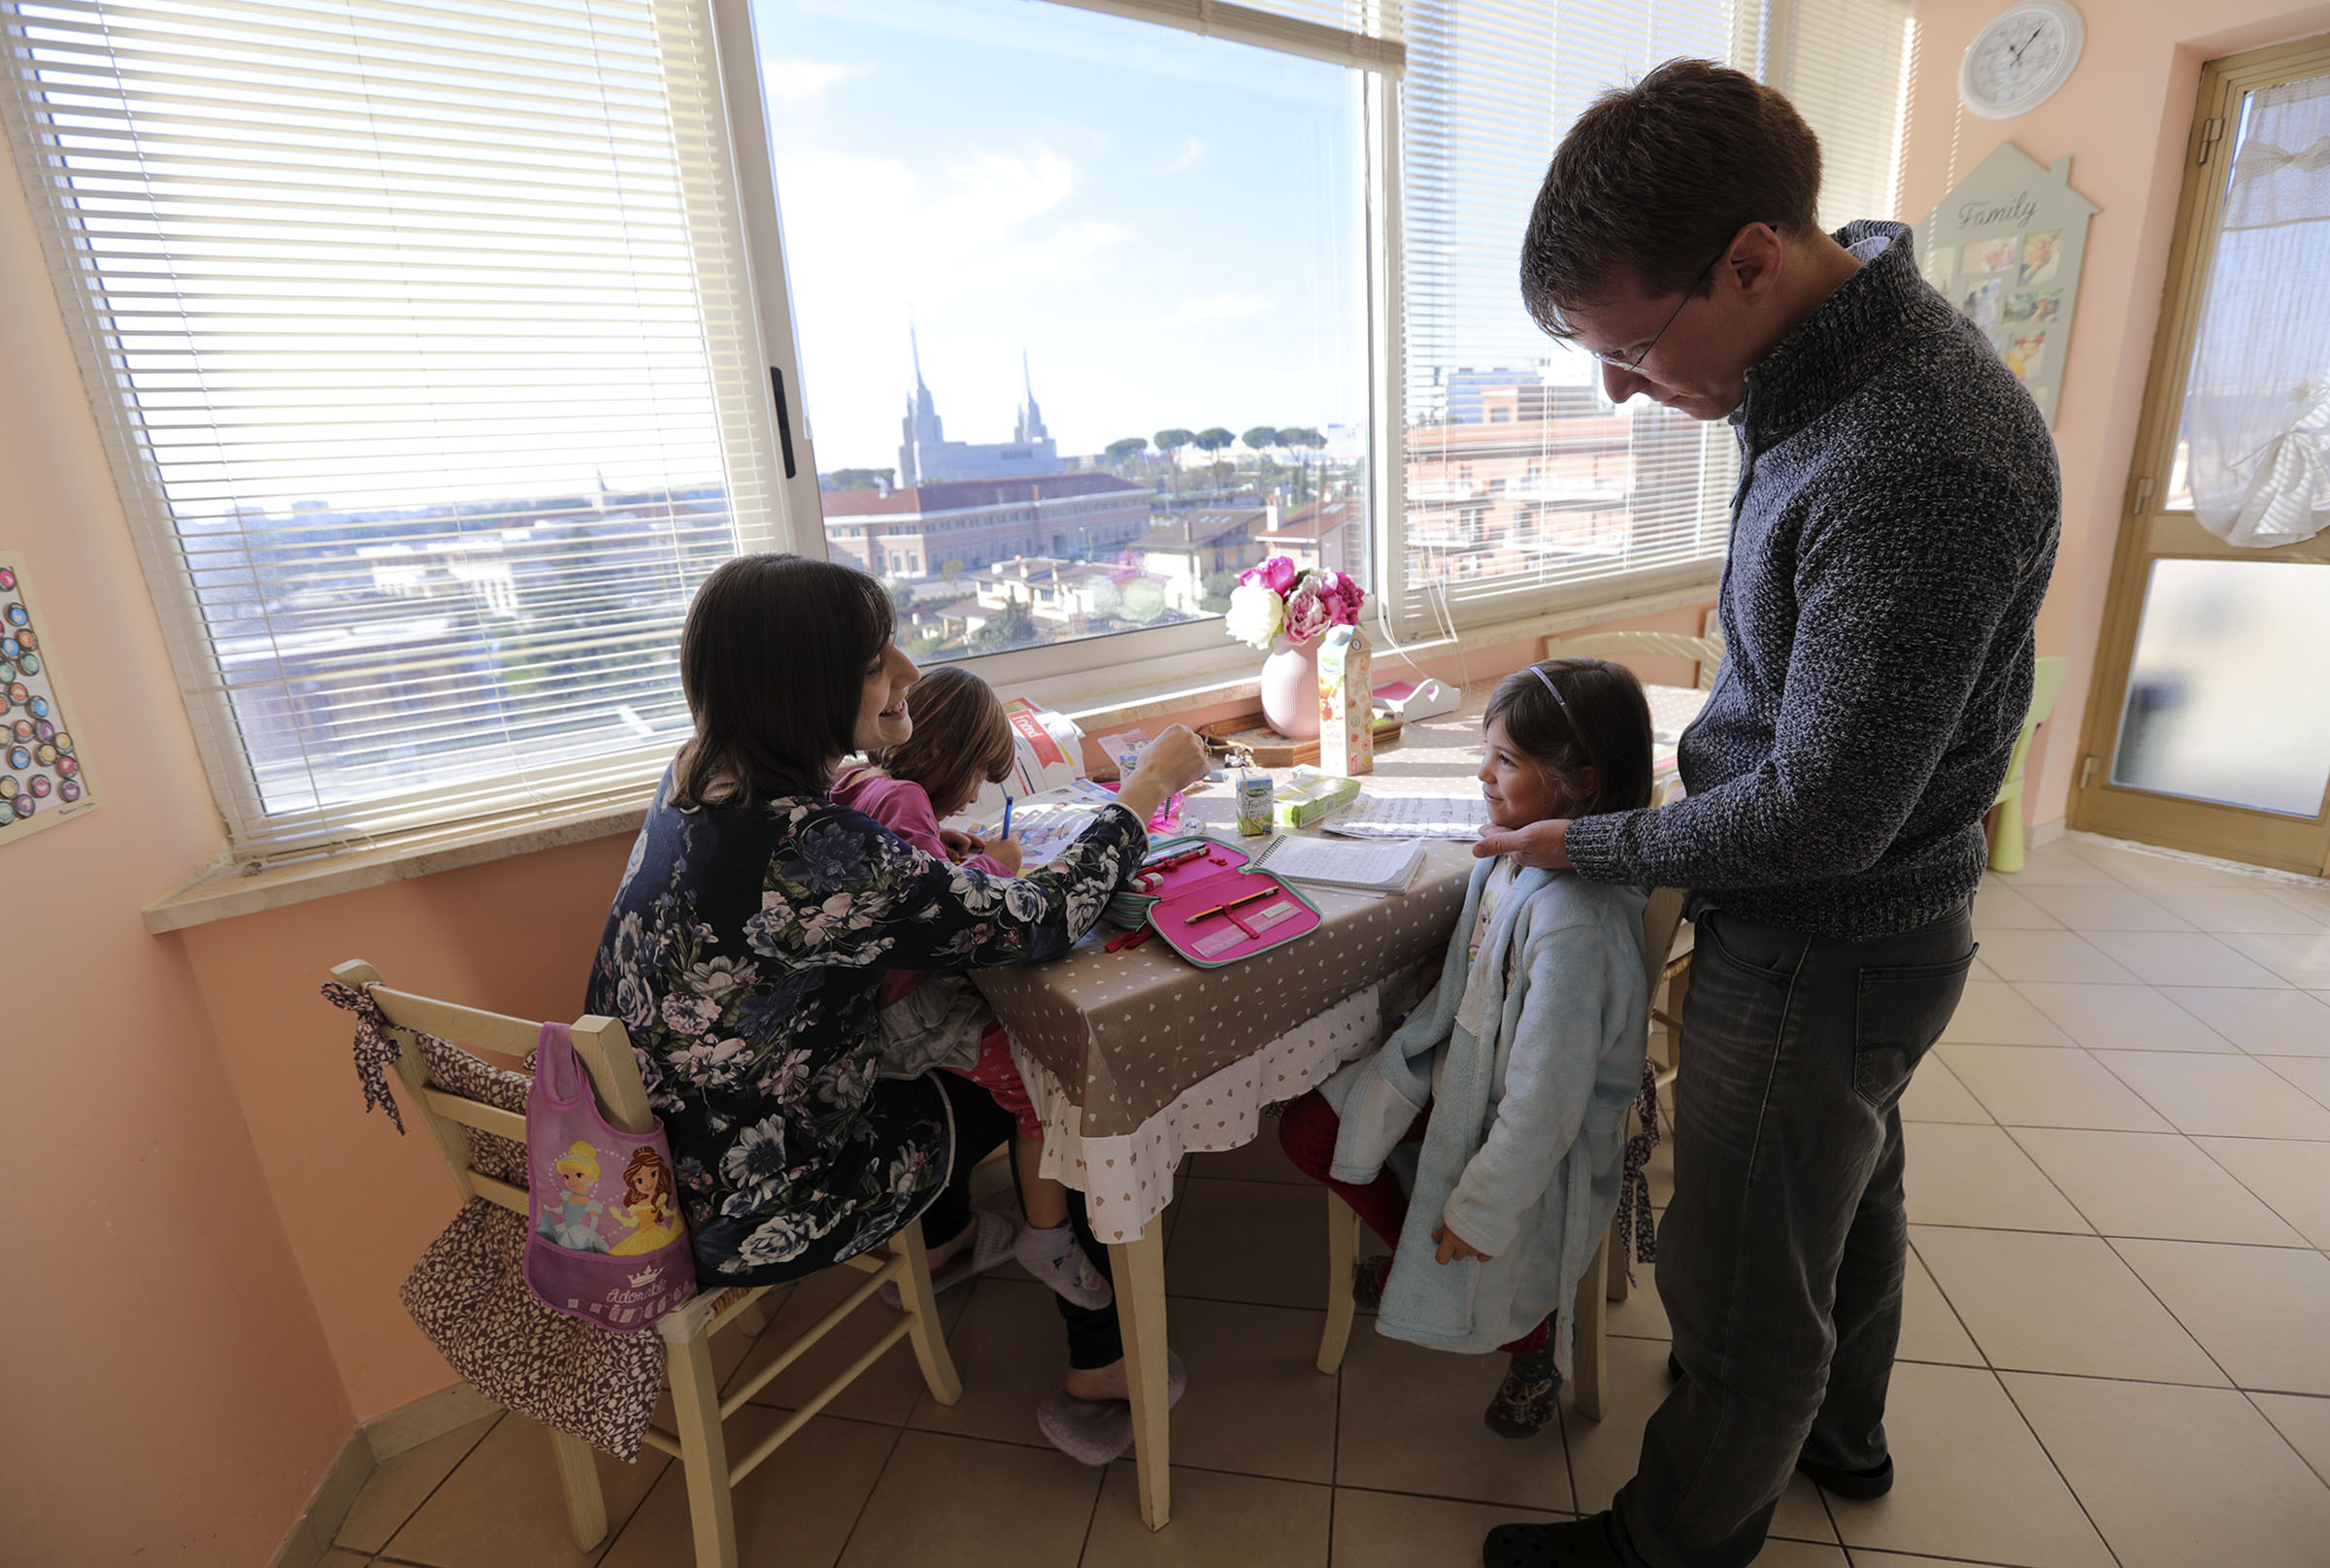 Norma, Alice, Emma and Daniele Salerno chat at the kitchen table, overlooking the Rome Temple, at home in Rome, Italy, on Sunday morning, Nov. 18, 2018.